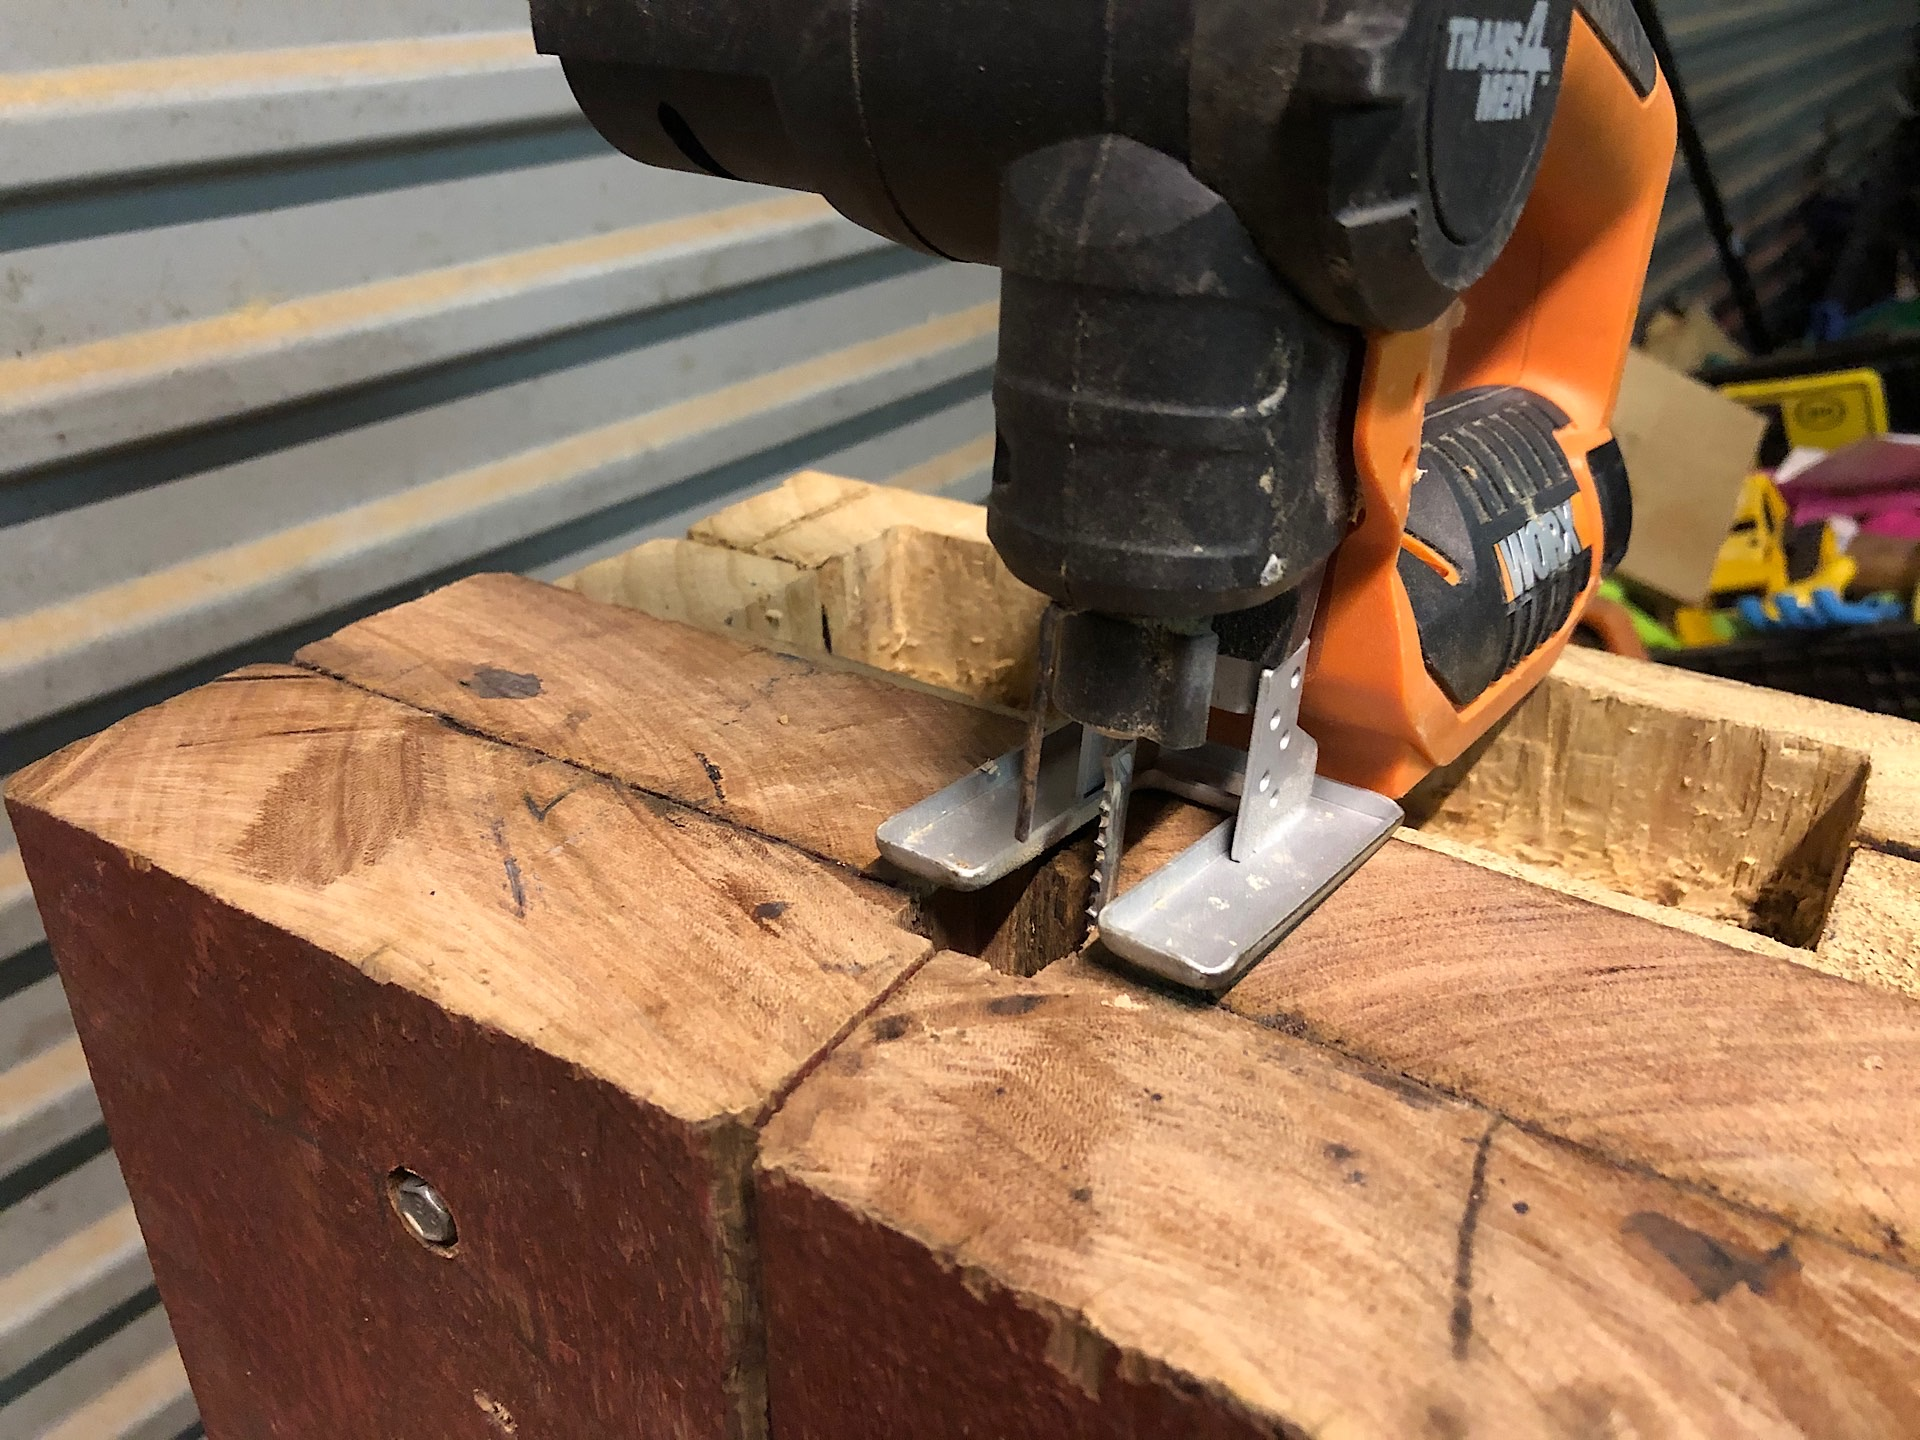 Squaring the hardy hole with a jigsaw